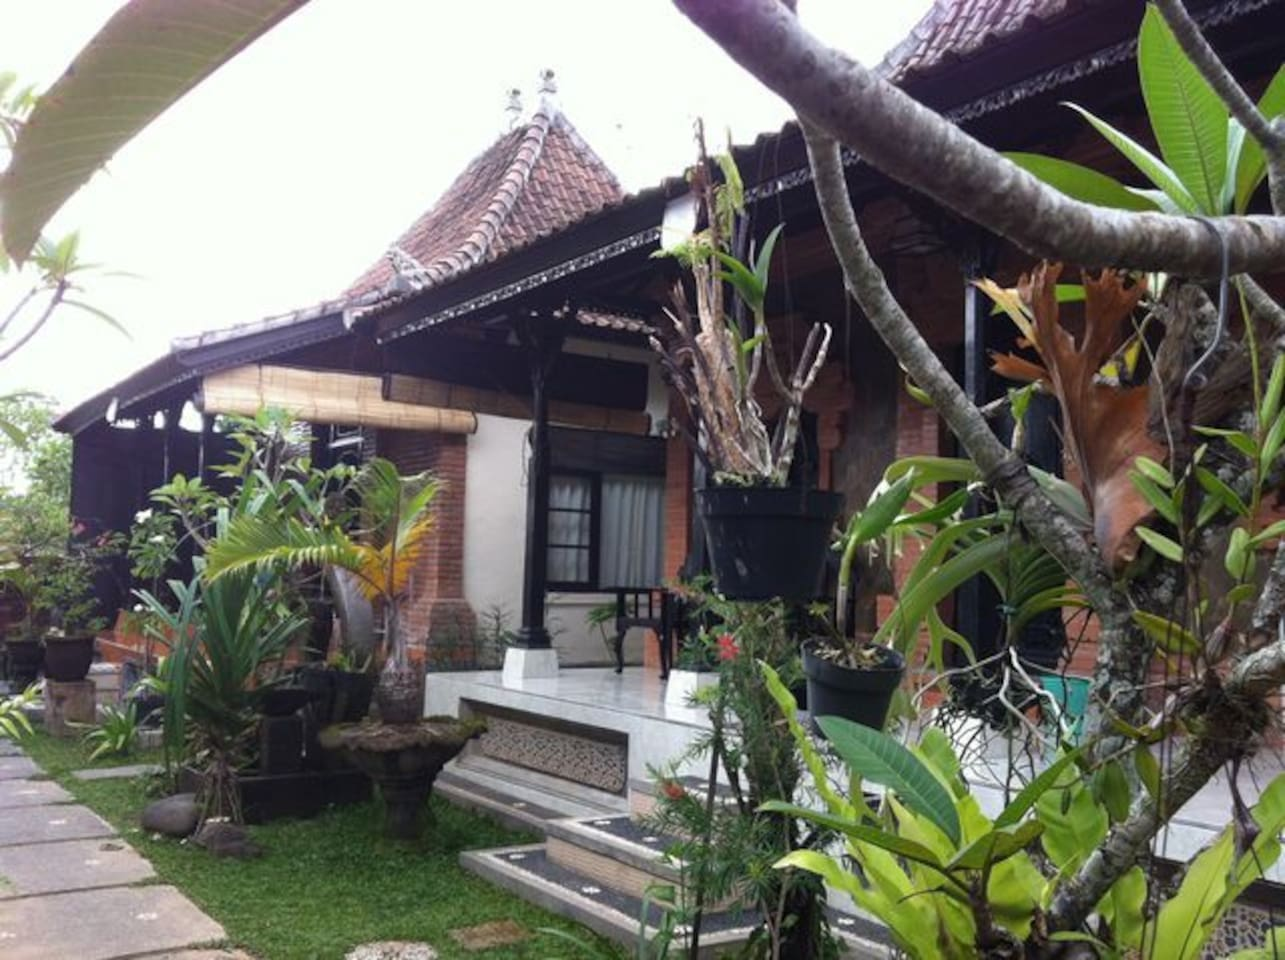 Typical Balinese houses with garden